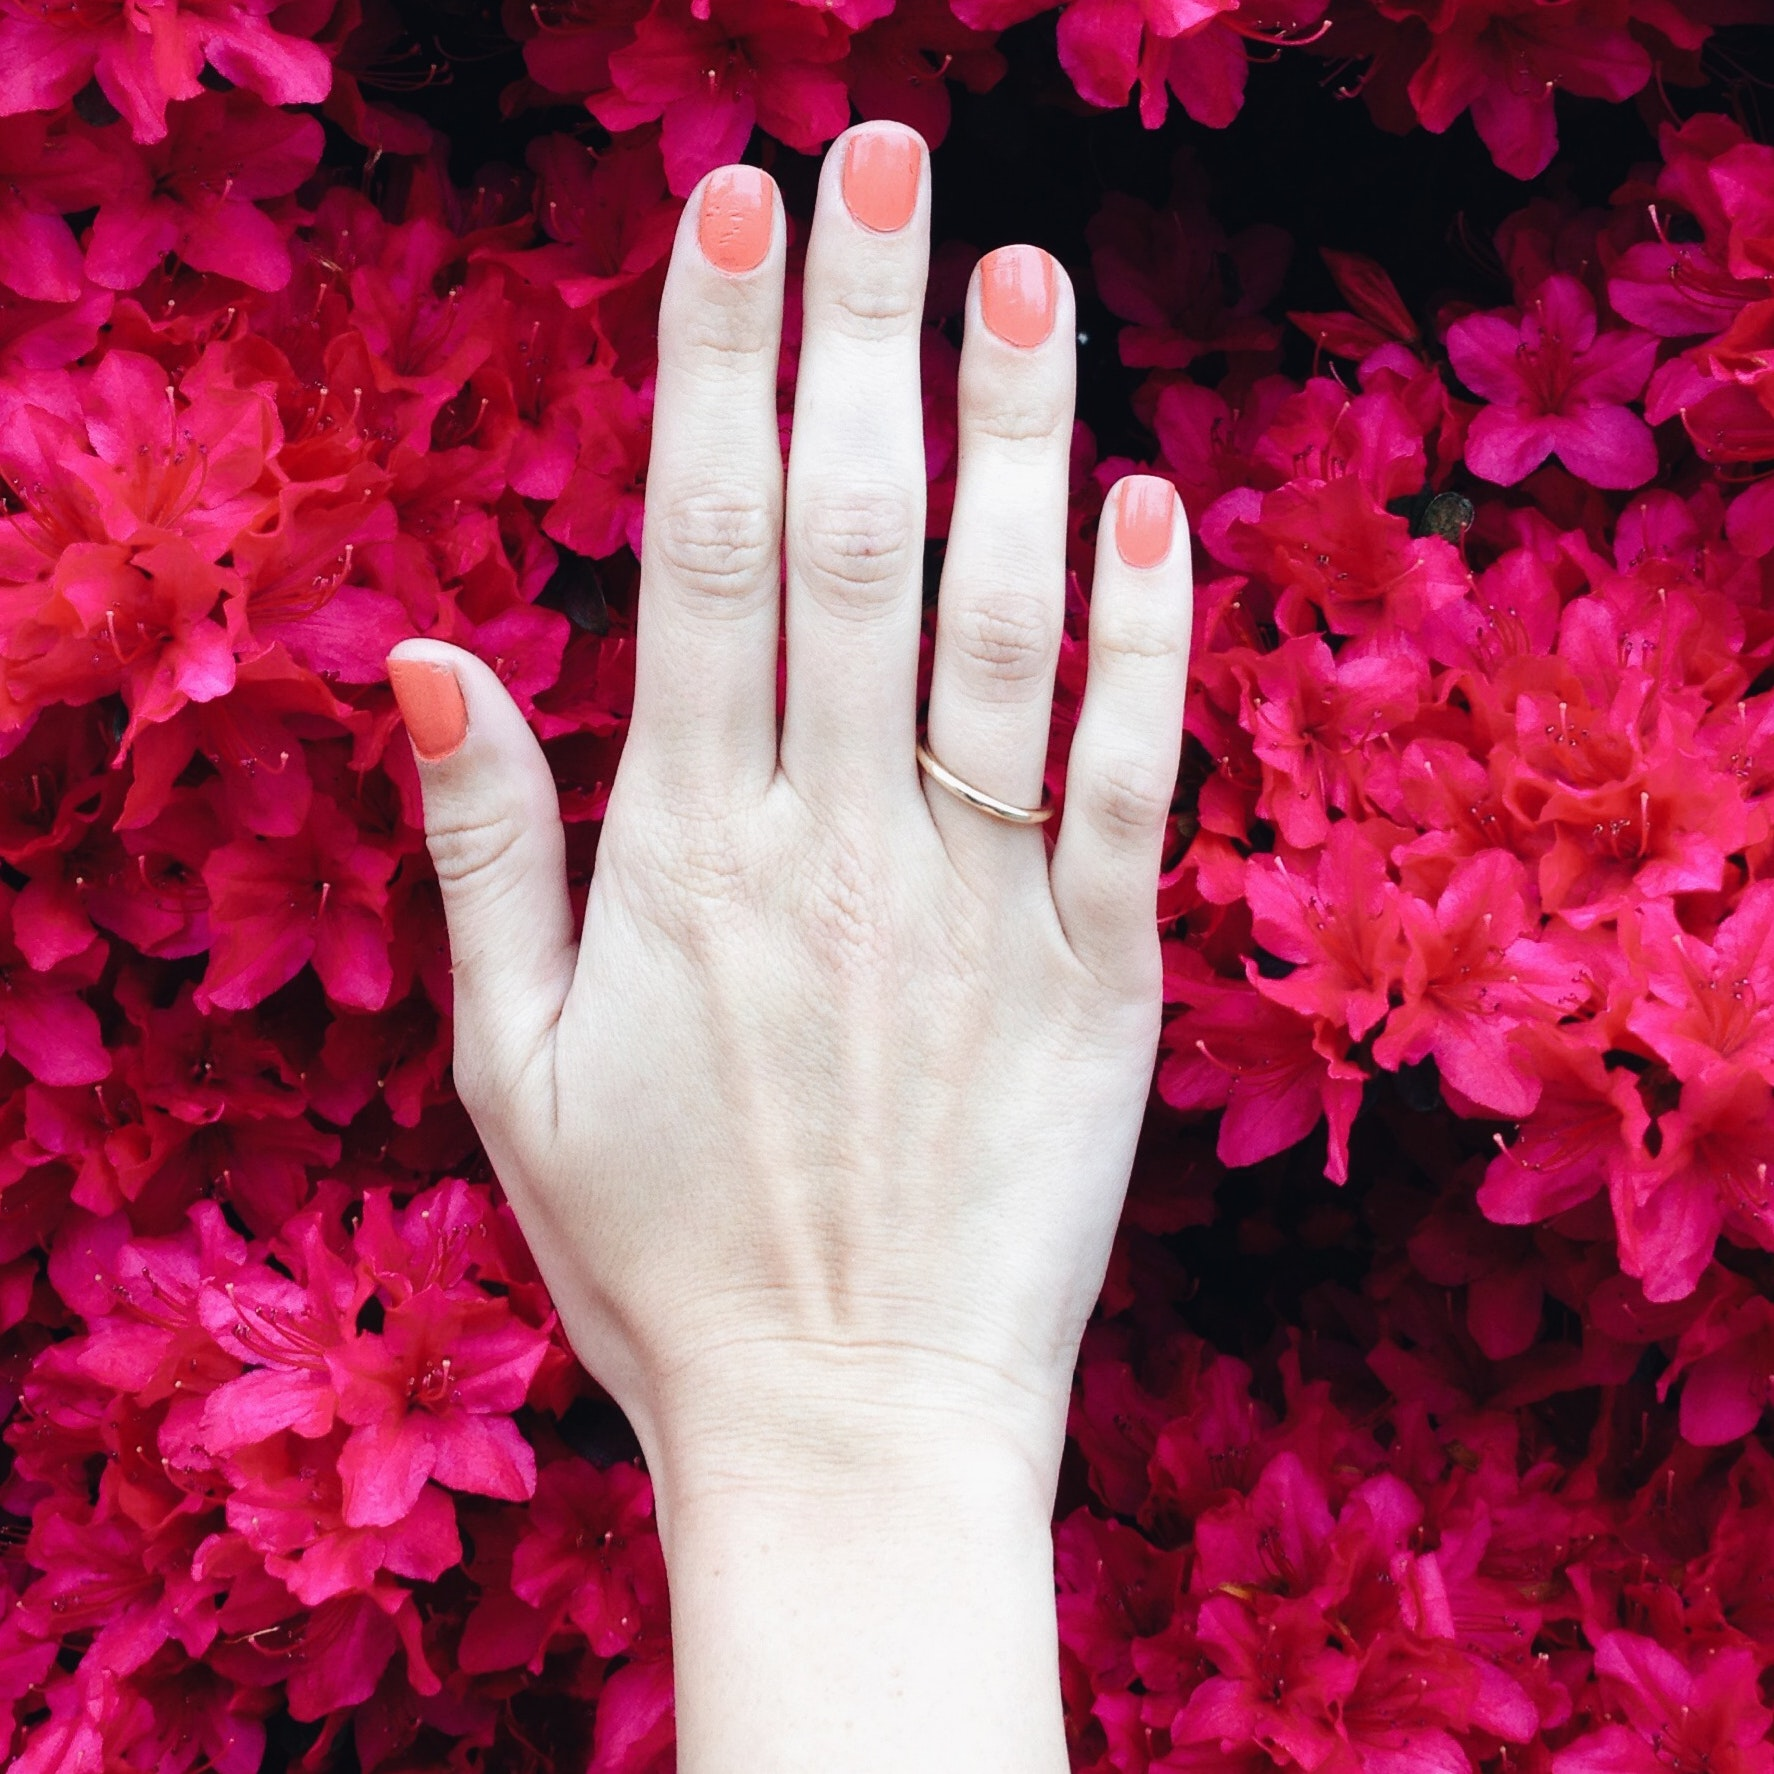 Here's How to Keep Your Manicure From Chipping For Twice as Long